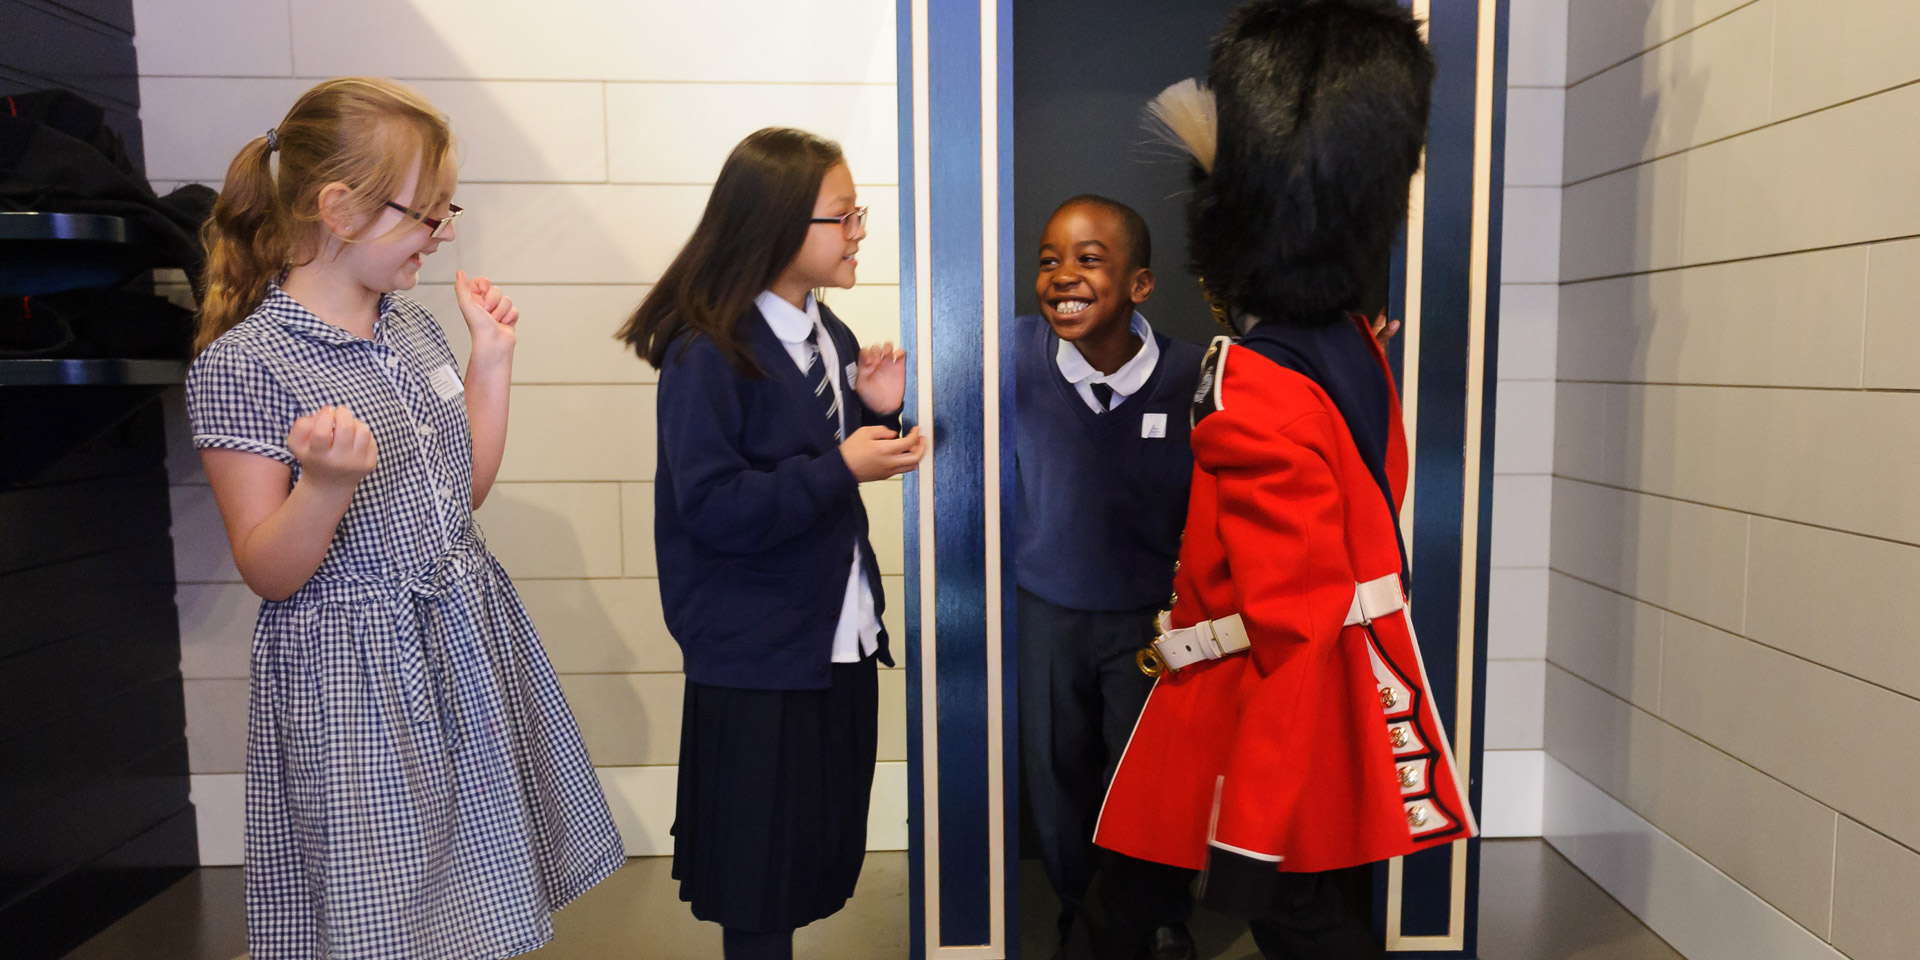 Kids trying on uniforms in Society gallery